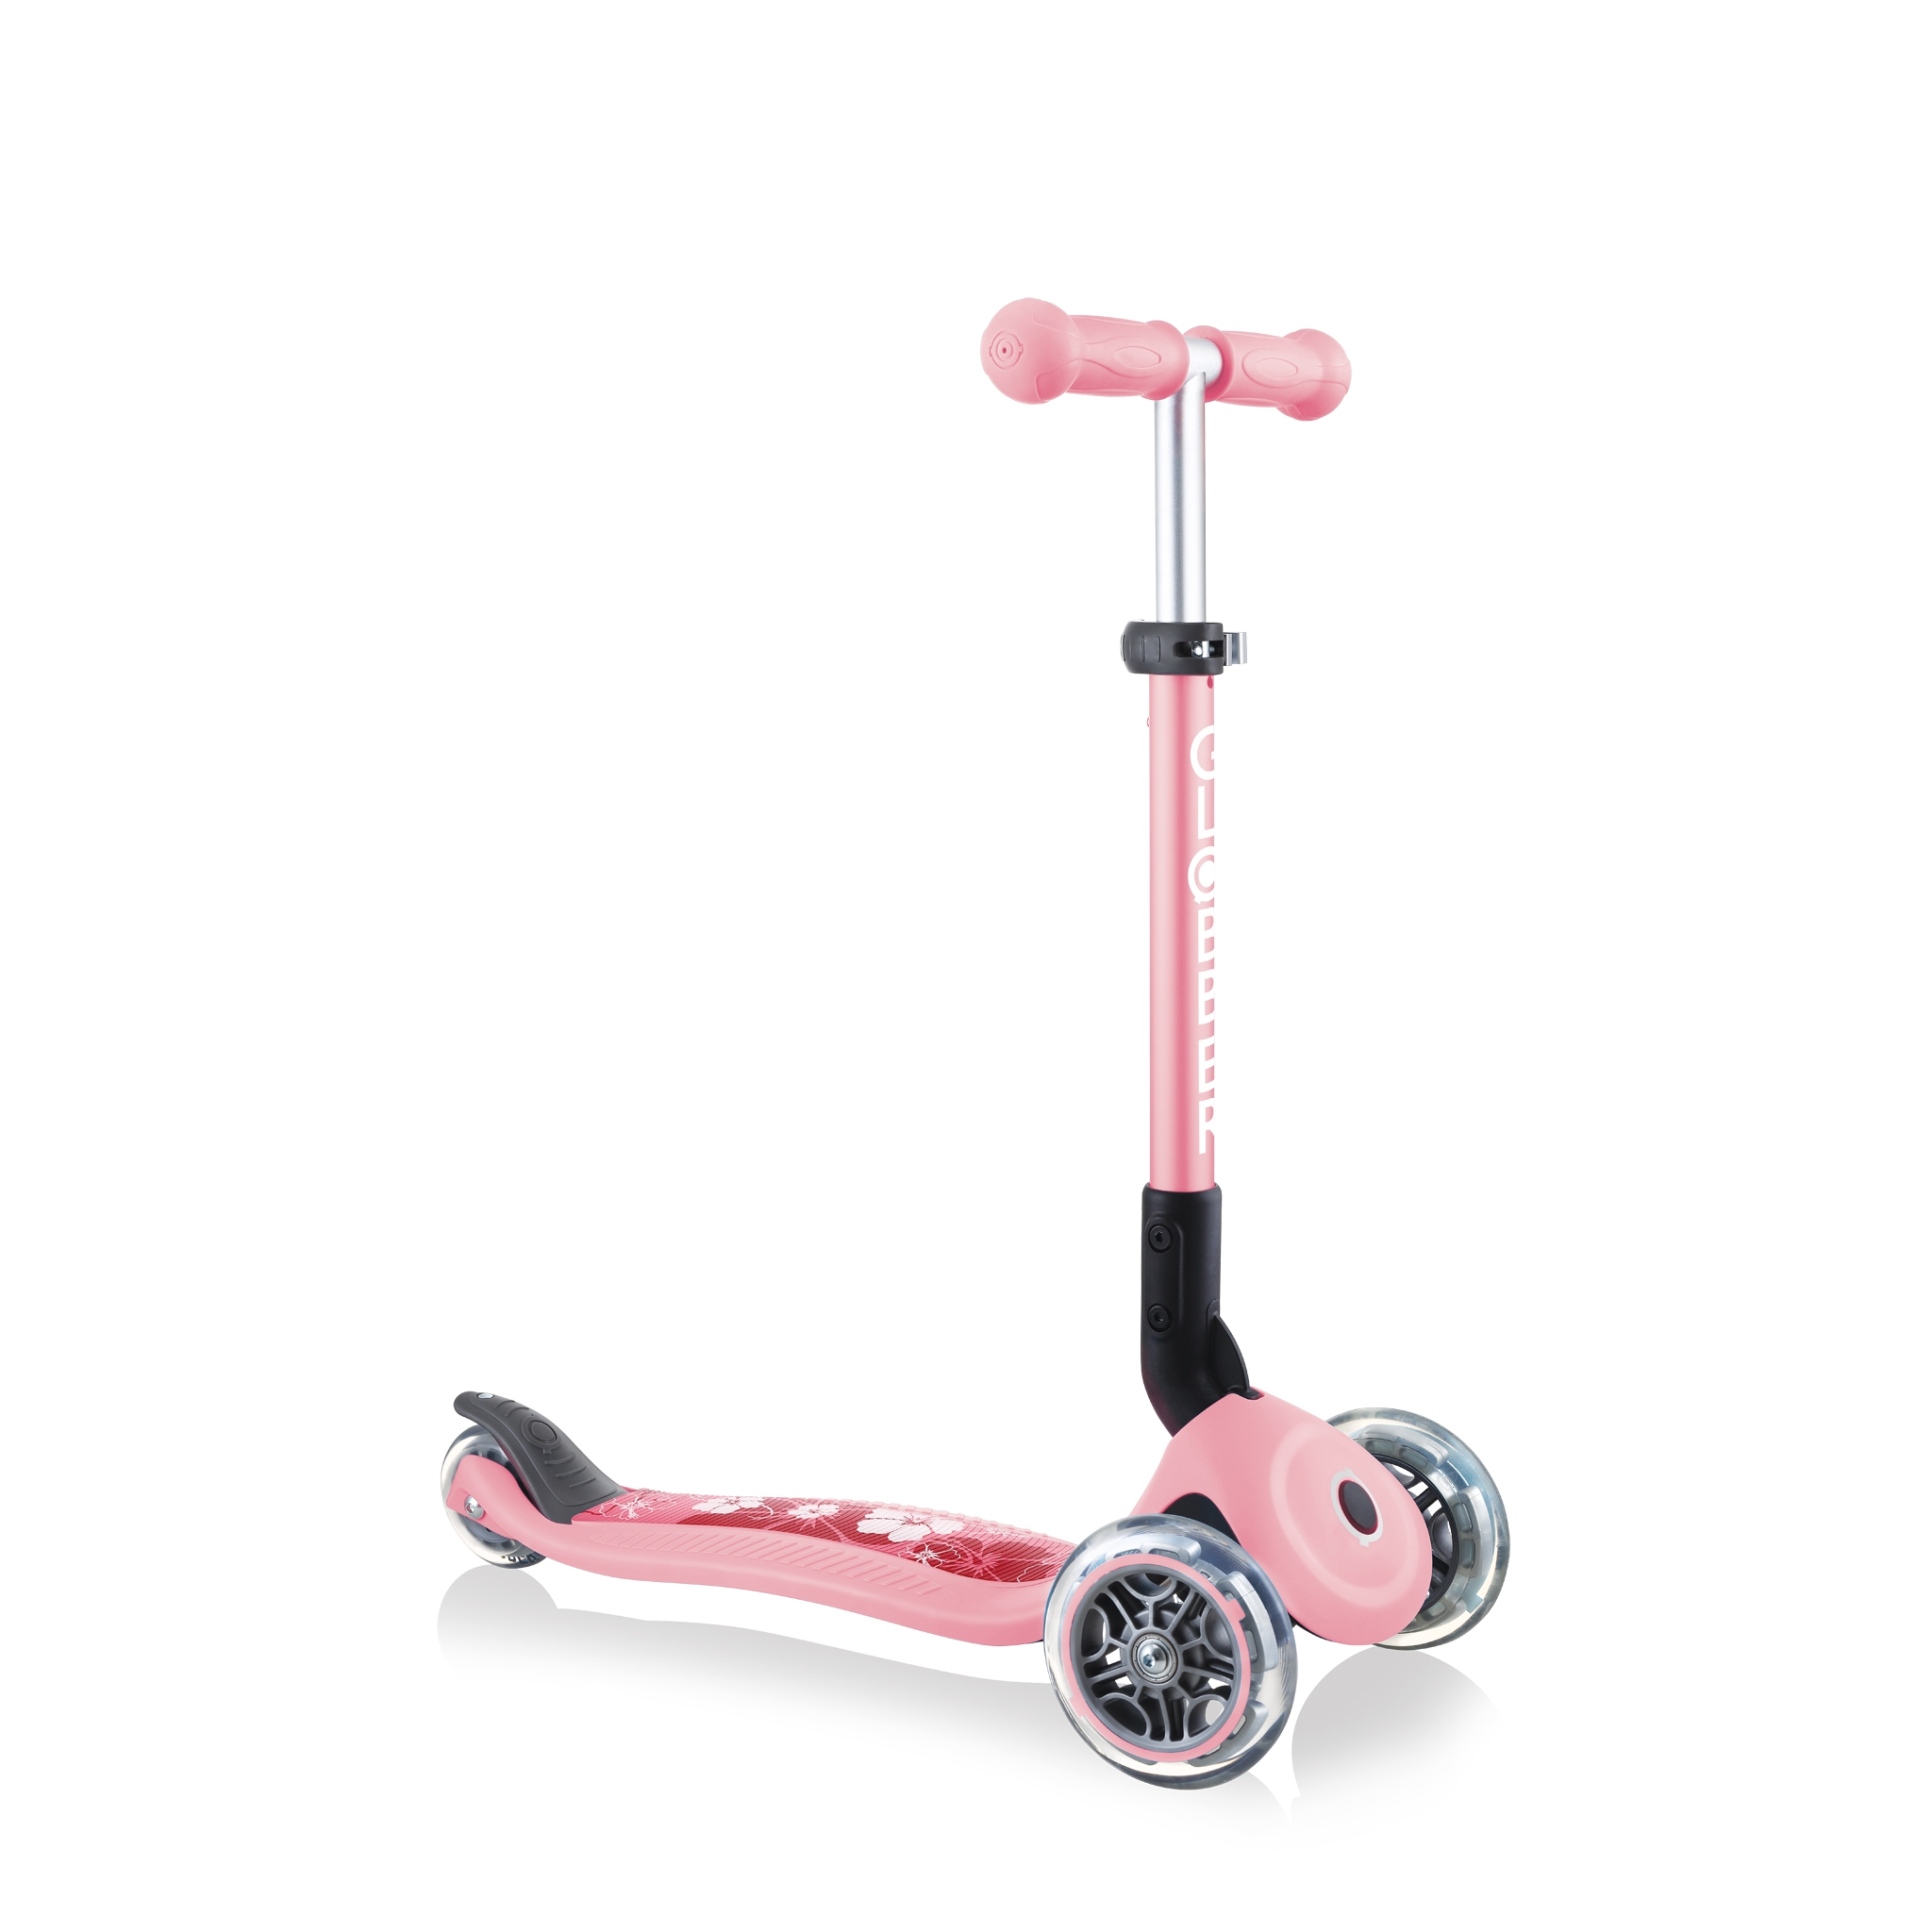 junior-foldable-fantasy-3-wheel-scooter-for-toddlers 0